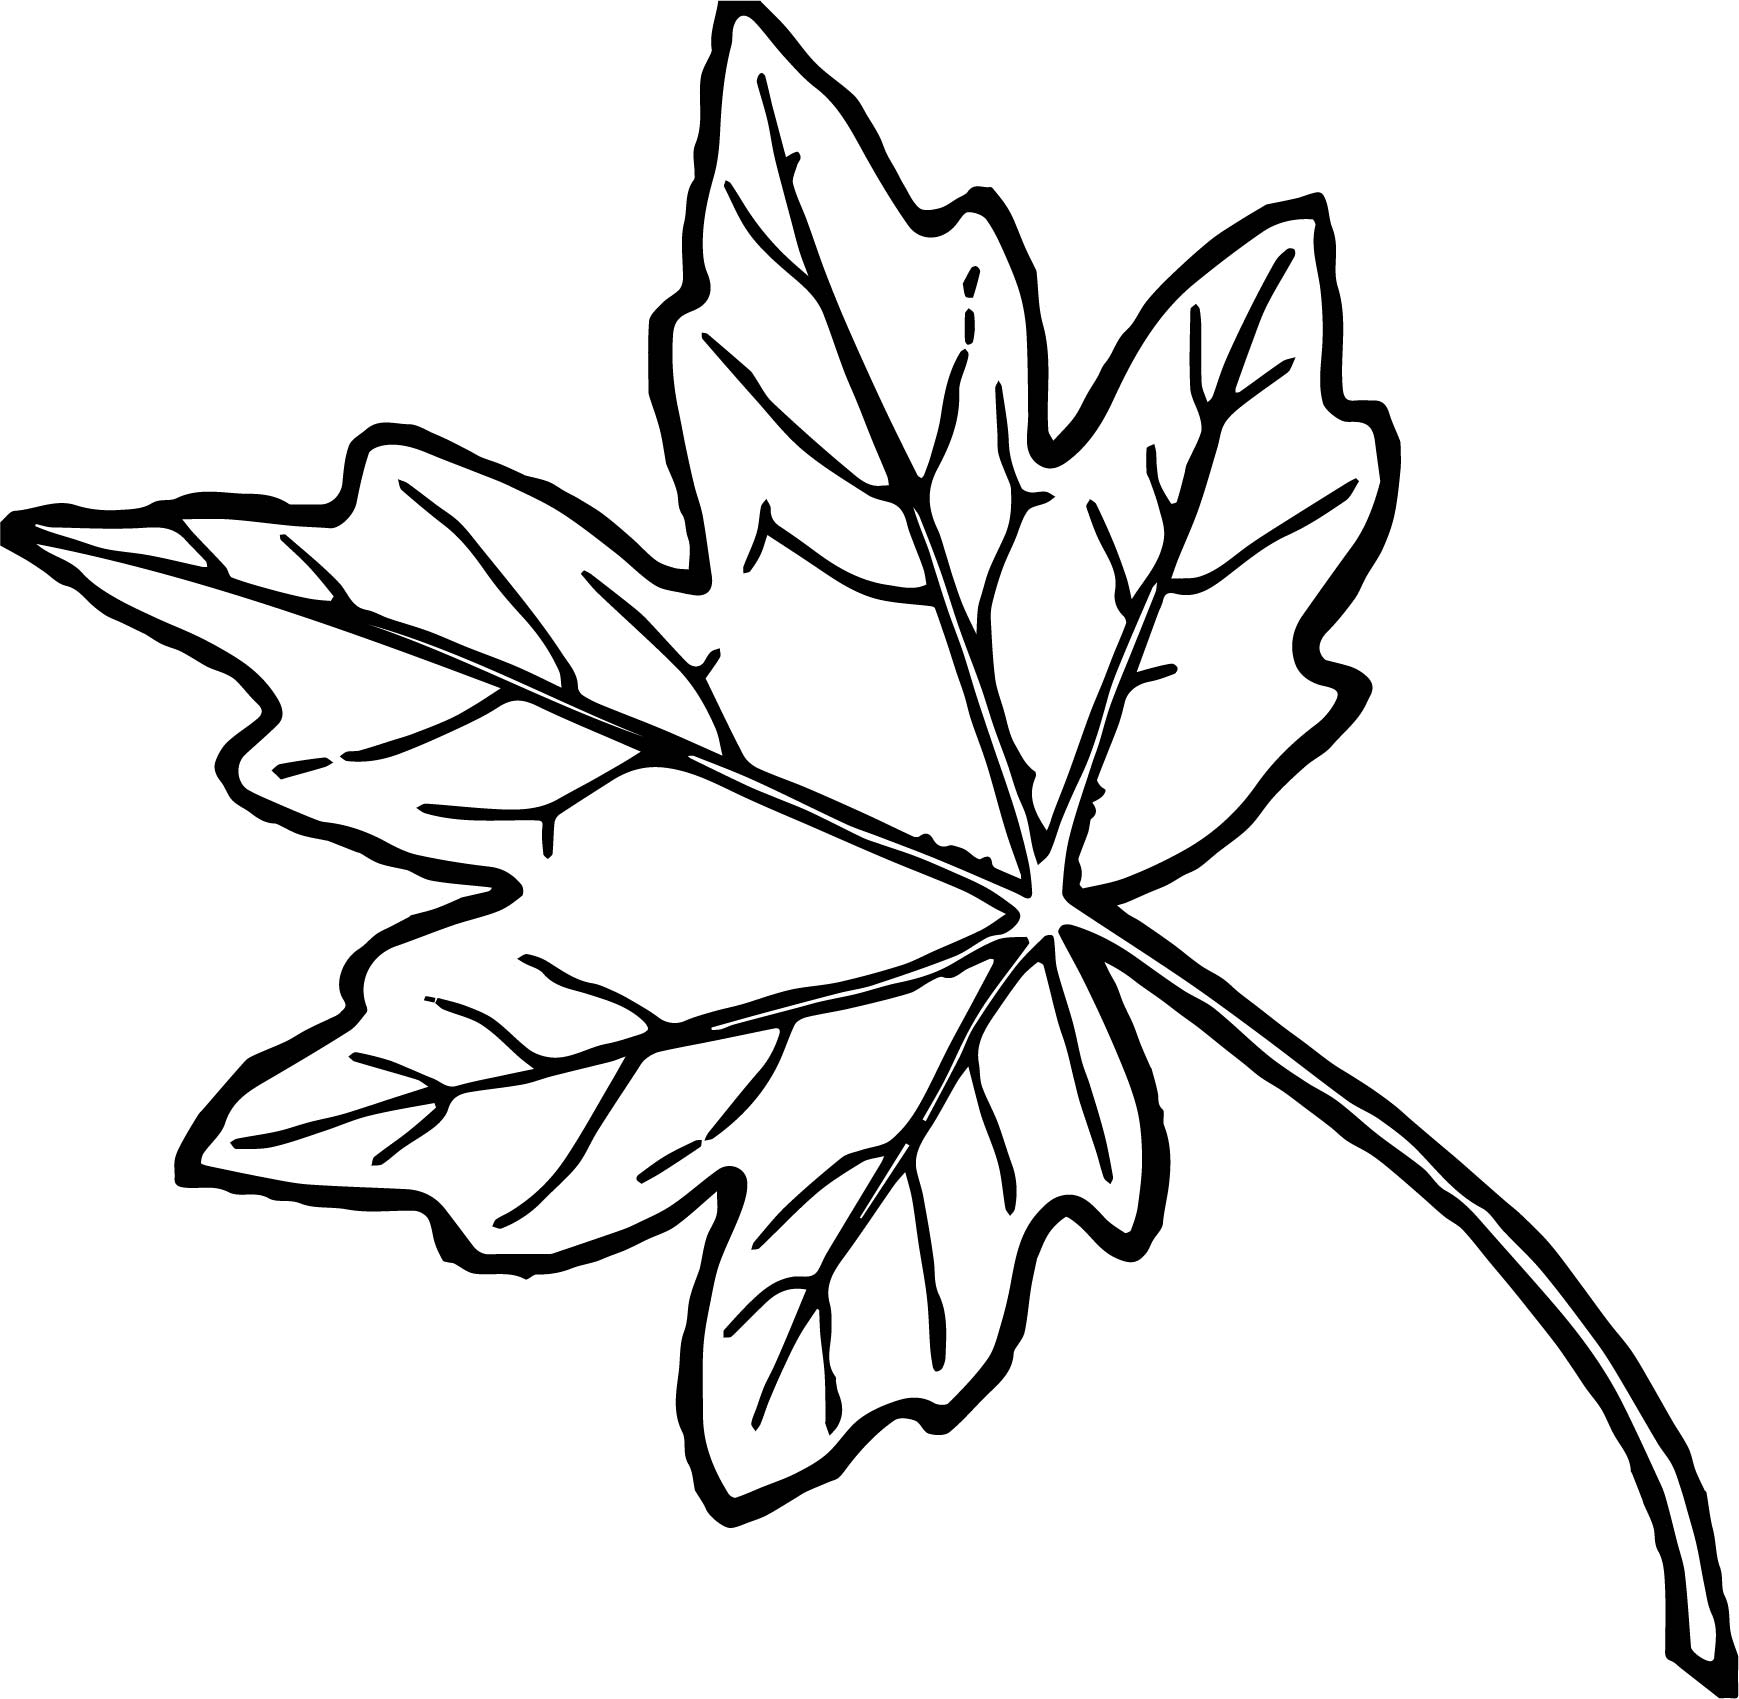 Just autumn leaf coloring page for Coloring pages autumn leaves